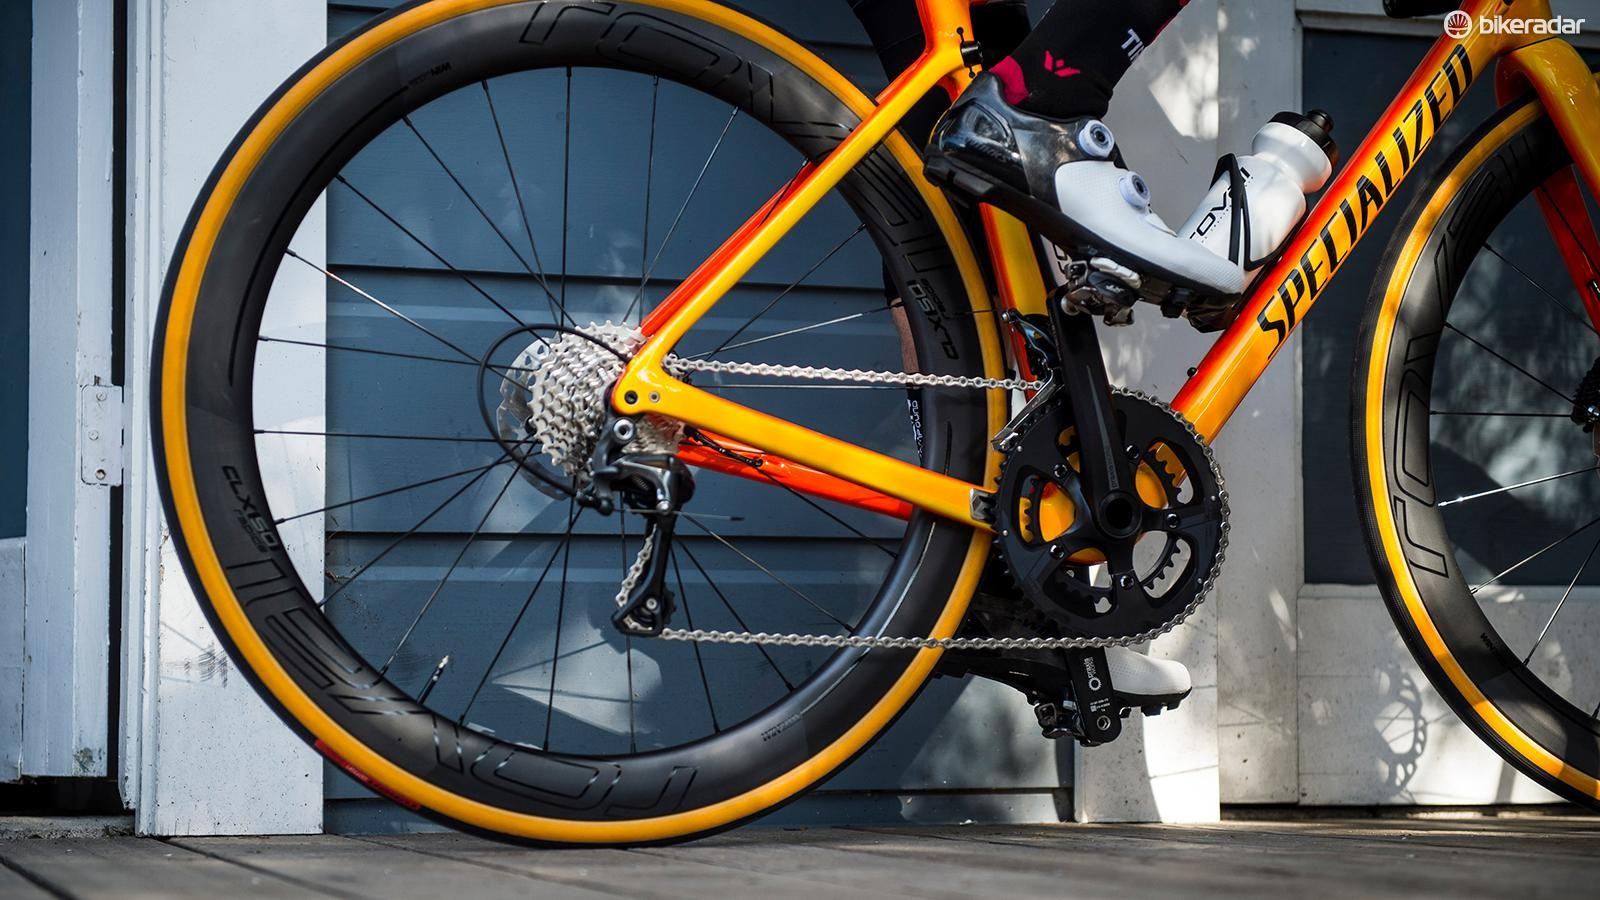 The test platform for the CLX 50 Disc was a Specialized Roubaix